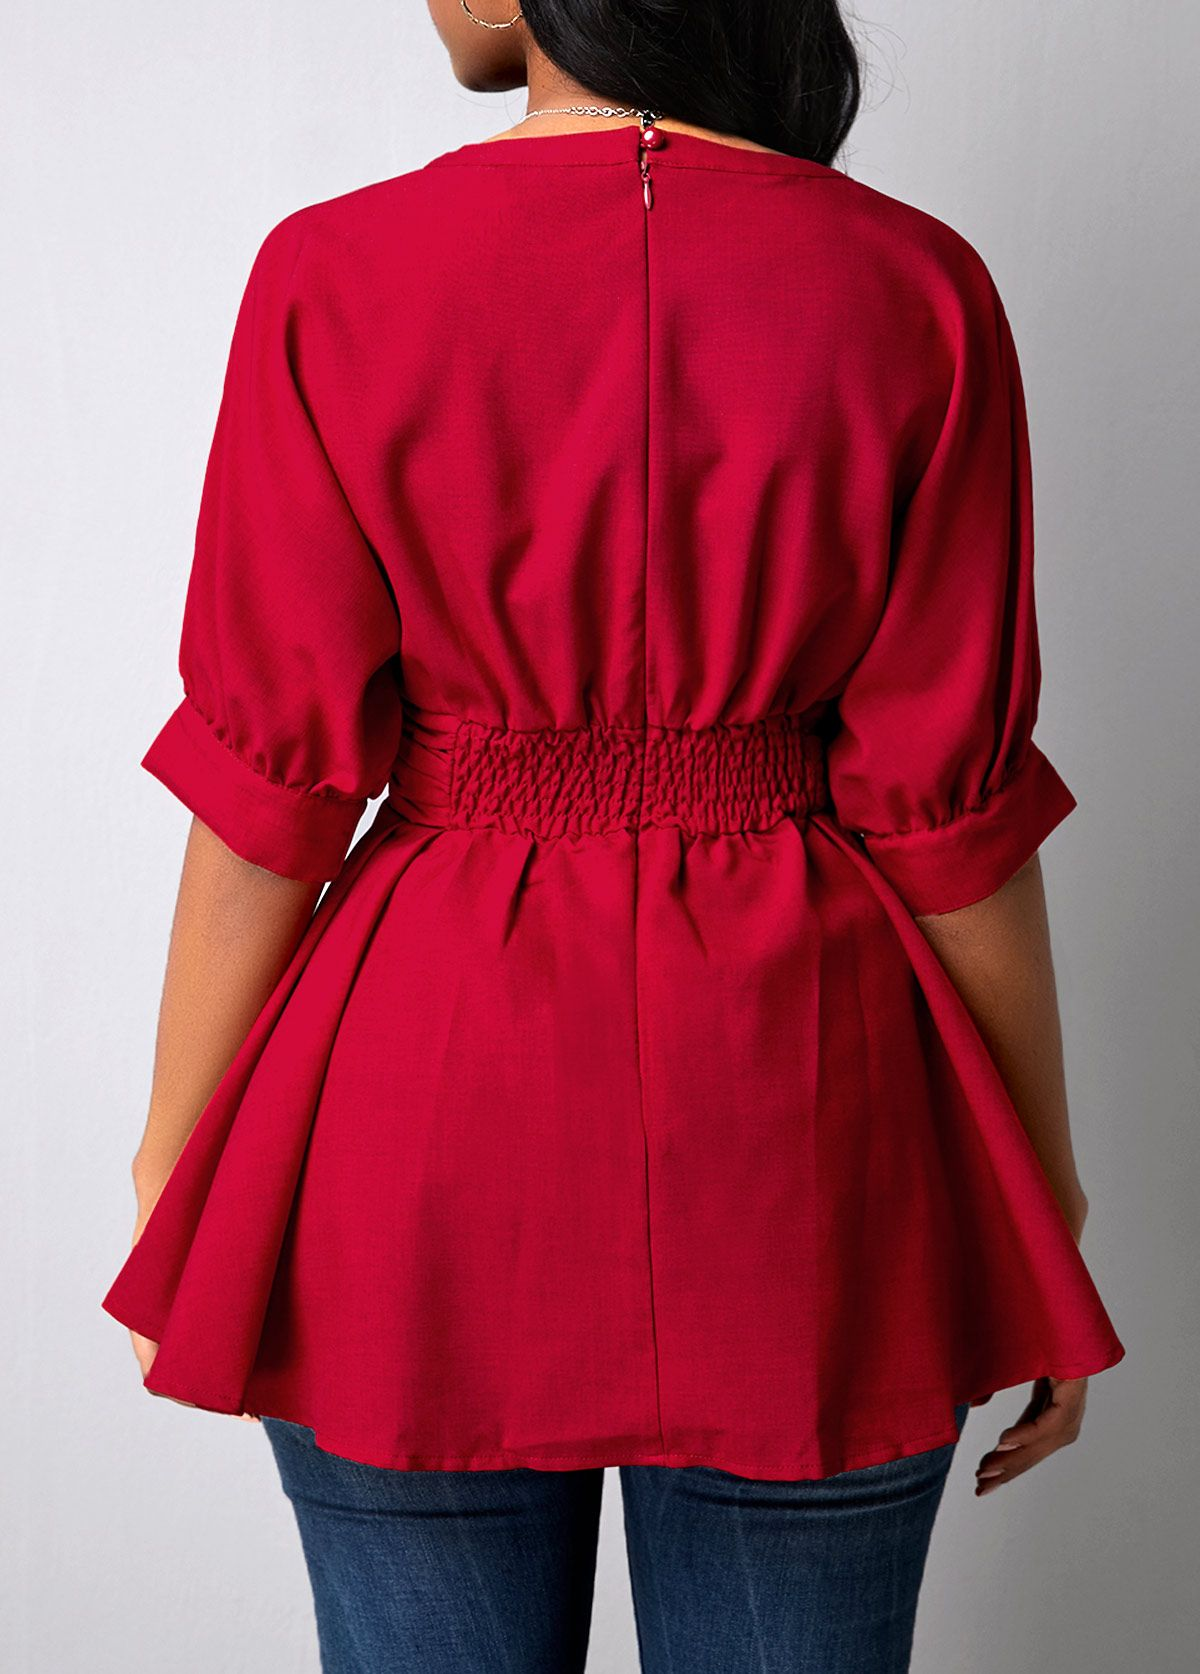 Button Detail Peplum Waist Wine Red Blouse Linkshe Com Usd 30 32 Wine Red Blouse Red Blouses Blouse